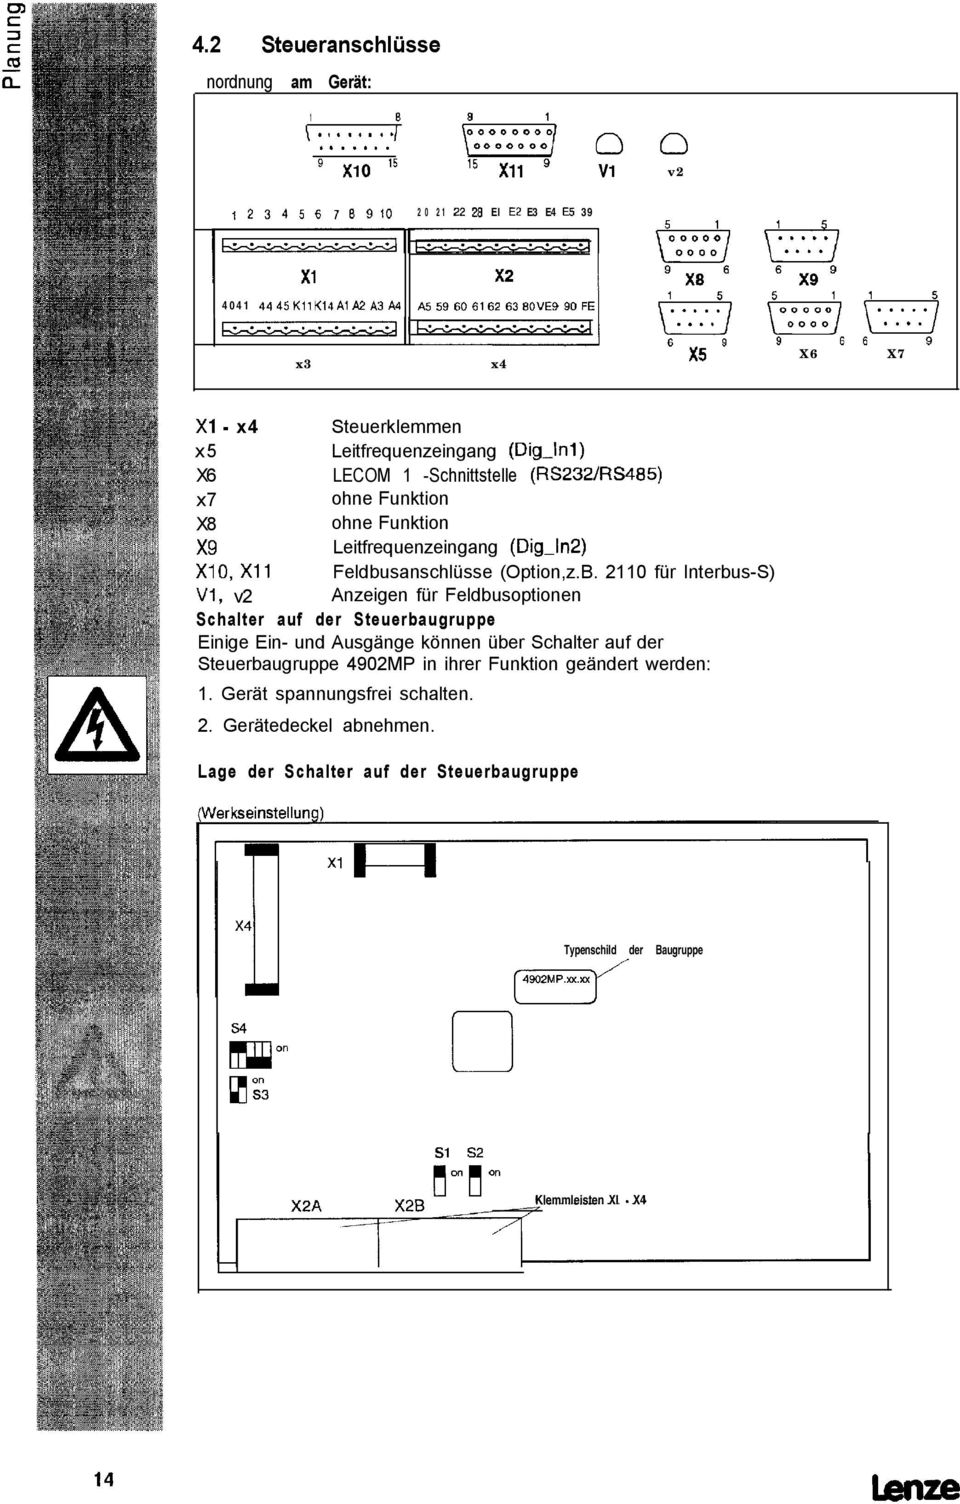 X6 LECOM 1 -Schnittstelle (RS232/RS485) x7 ohne Funktion X8 ohne Funktion x9 Leitfrequenzeingang (Dig-ln2) XlO, Xll Feldbusanschlüsse (Option,z.B.